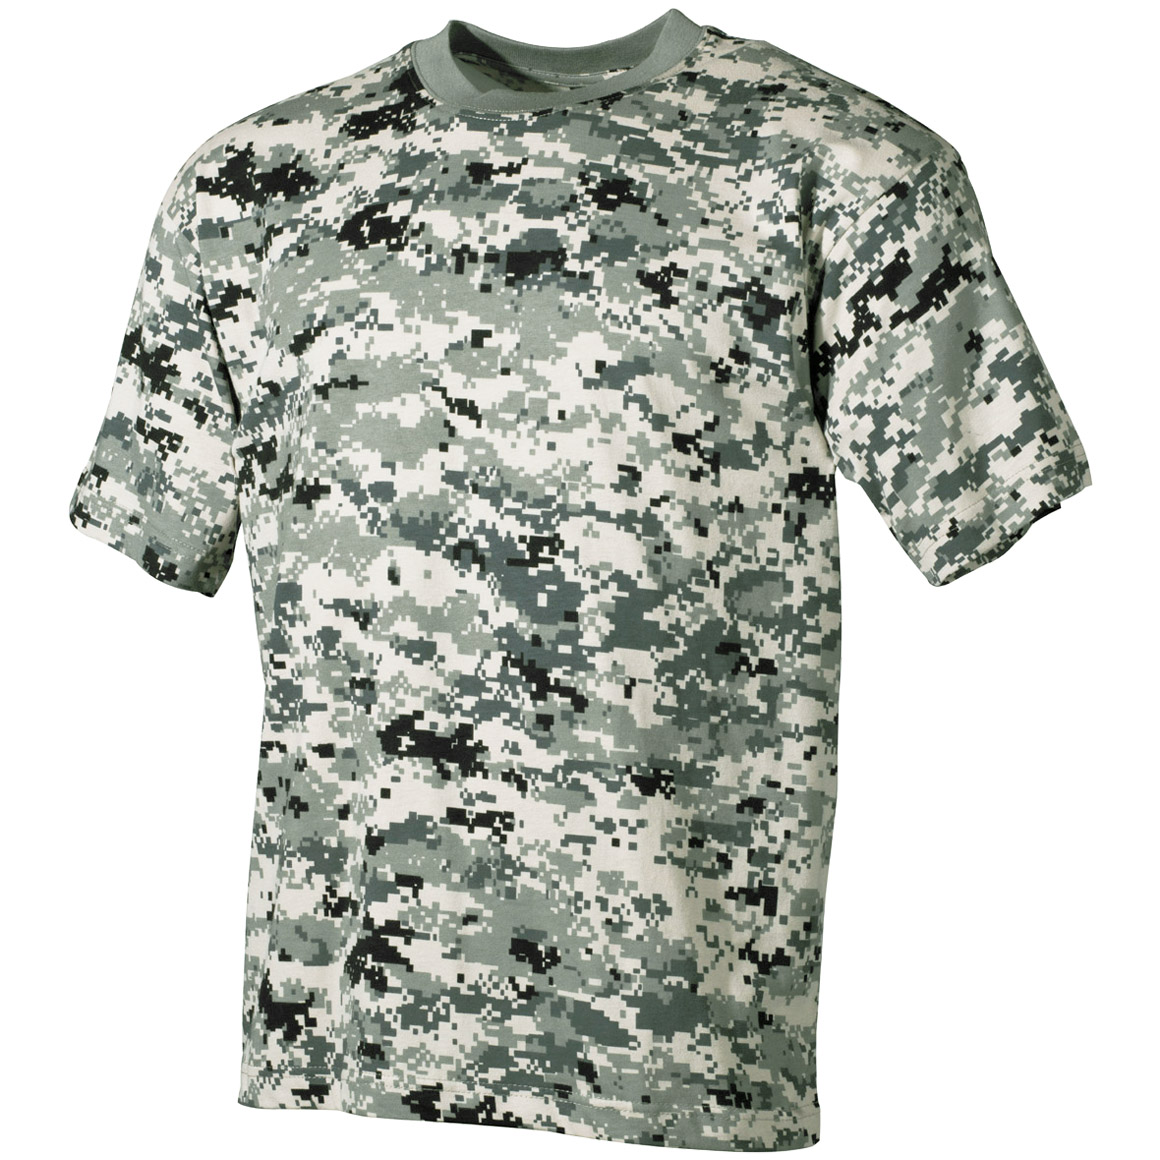 bf1157c6 Details about Tactical Mens T-Shirt Military Top Army Tee Metro Digital  Urban Camouflage S-3XL